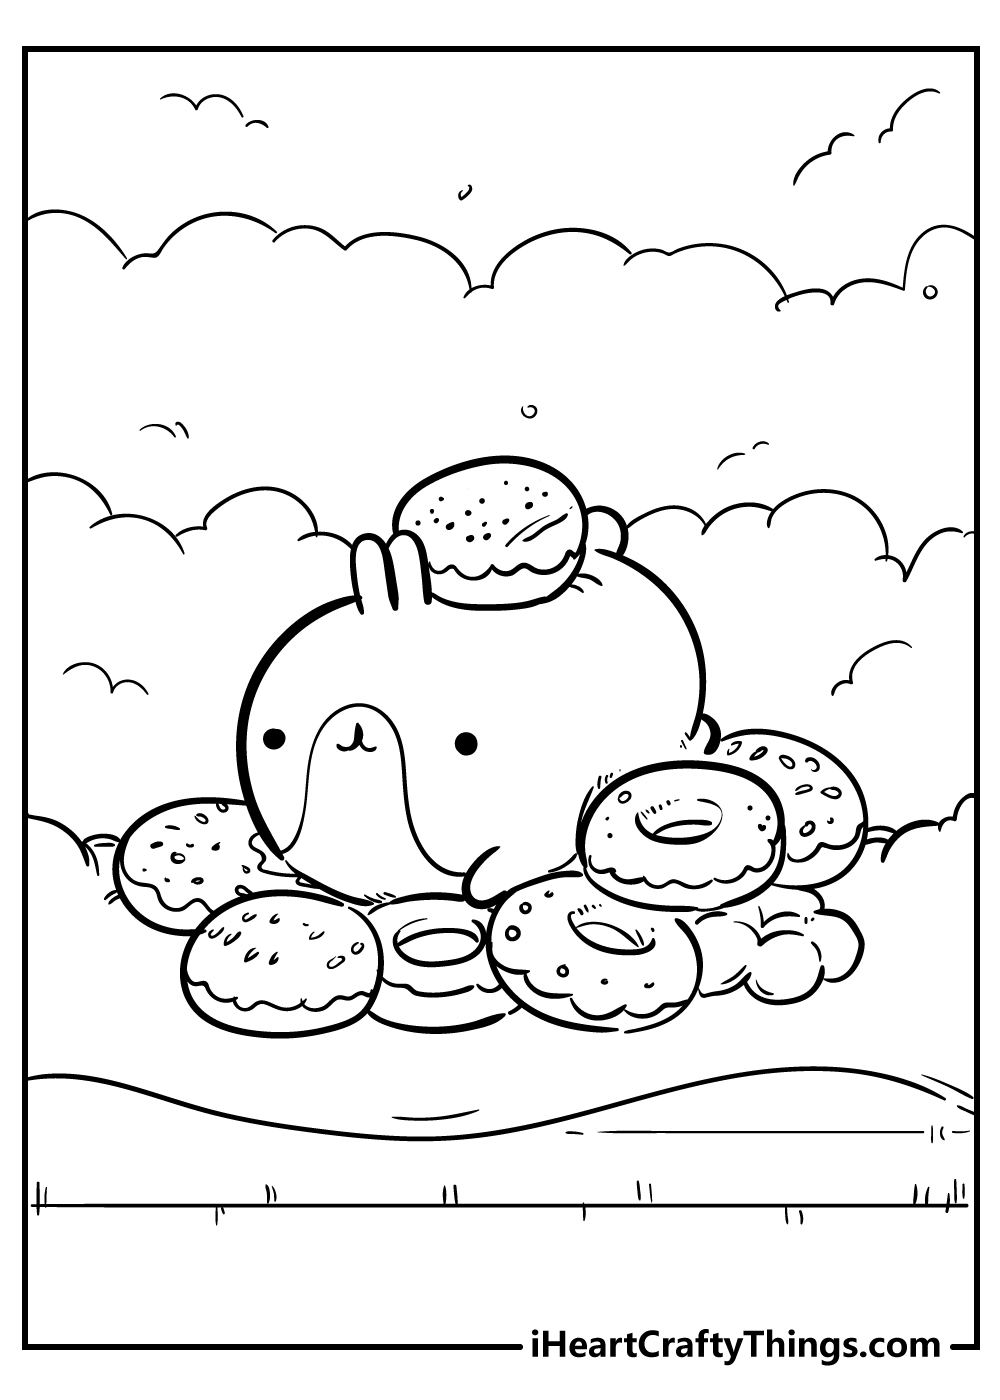 cute kawaii coloring pages for kids free printable